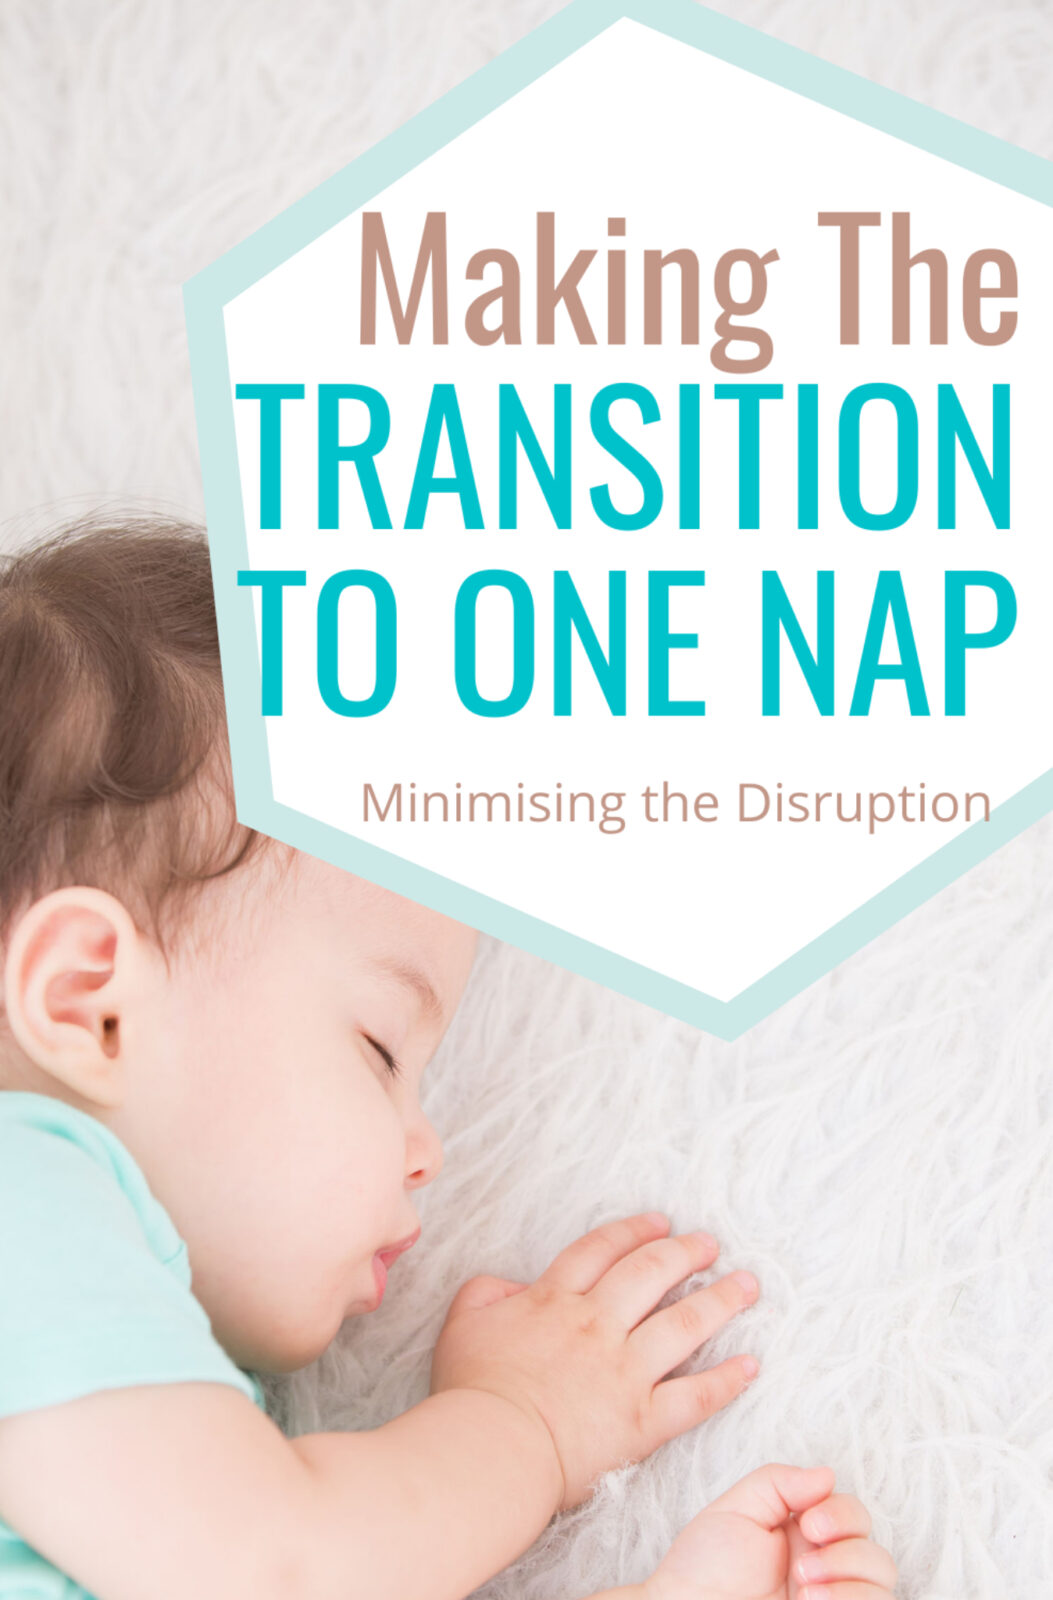 Making the transition to one nap - Minimising the disruption Image of baby asleep